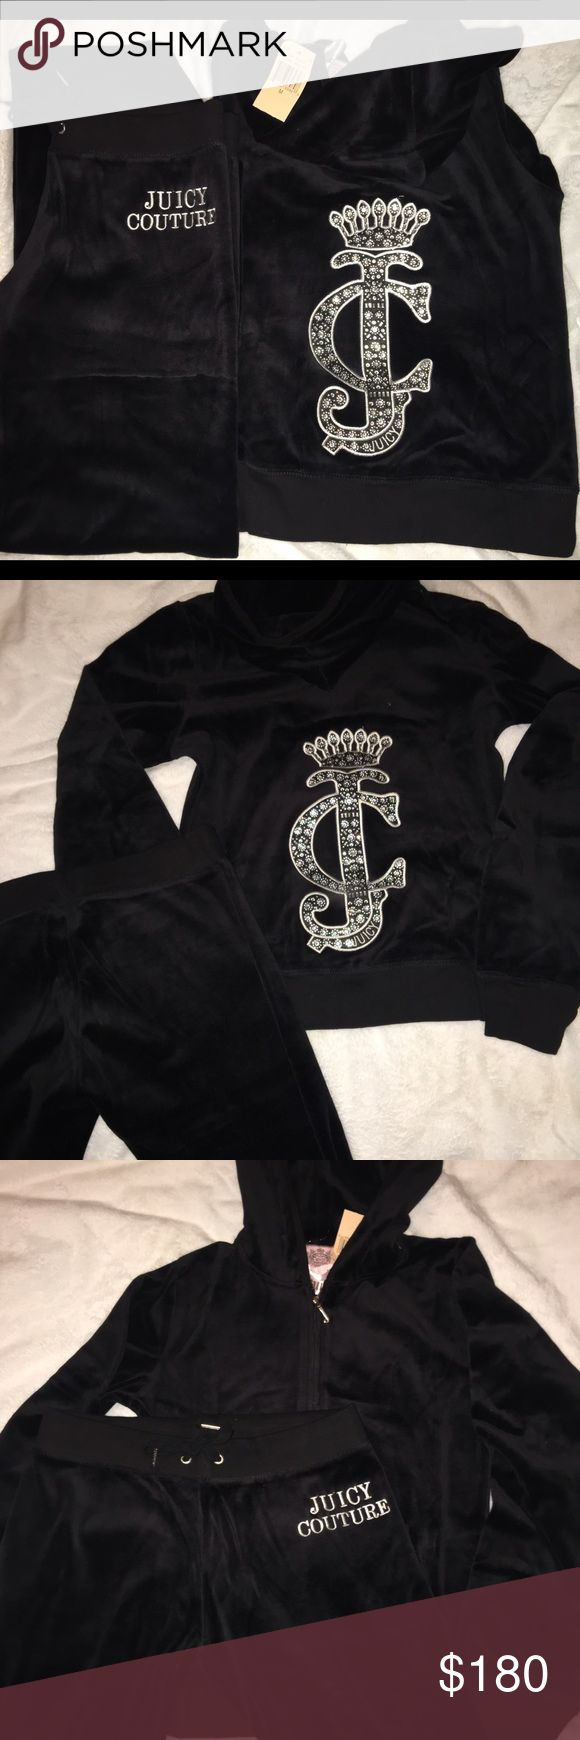 NWT Black Juicy Couture Tracksuit size M Brand new with tags Black Juicy Couture tracksuit size Medium. Juicy Couture Other